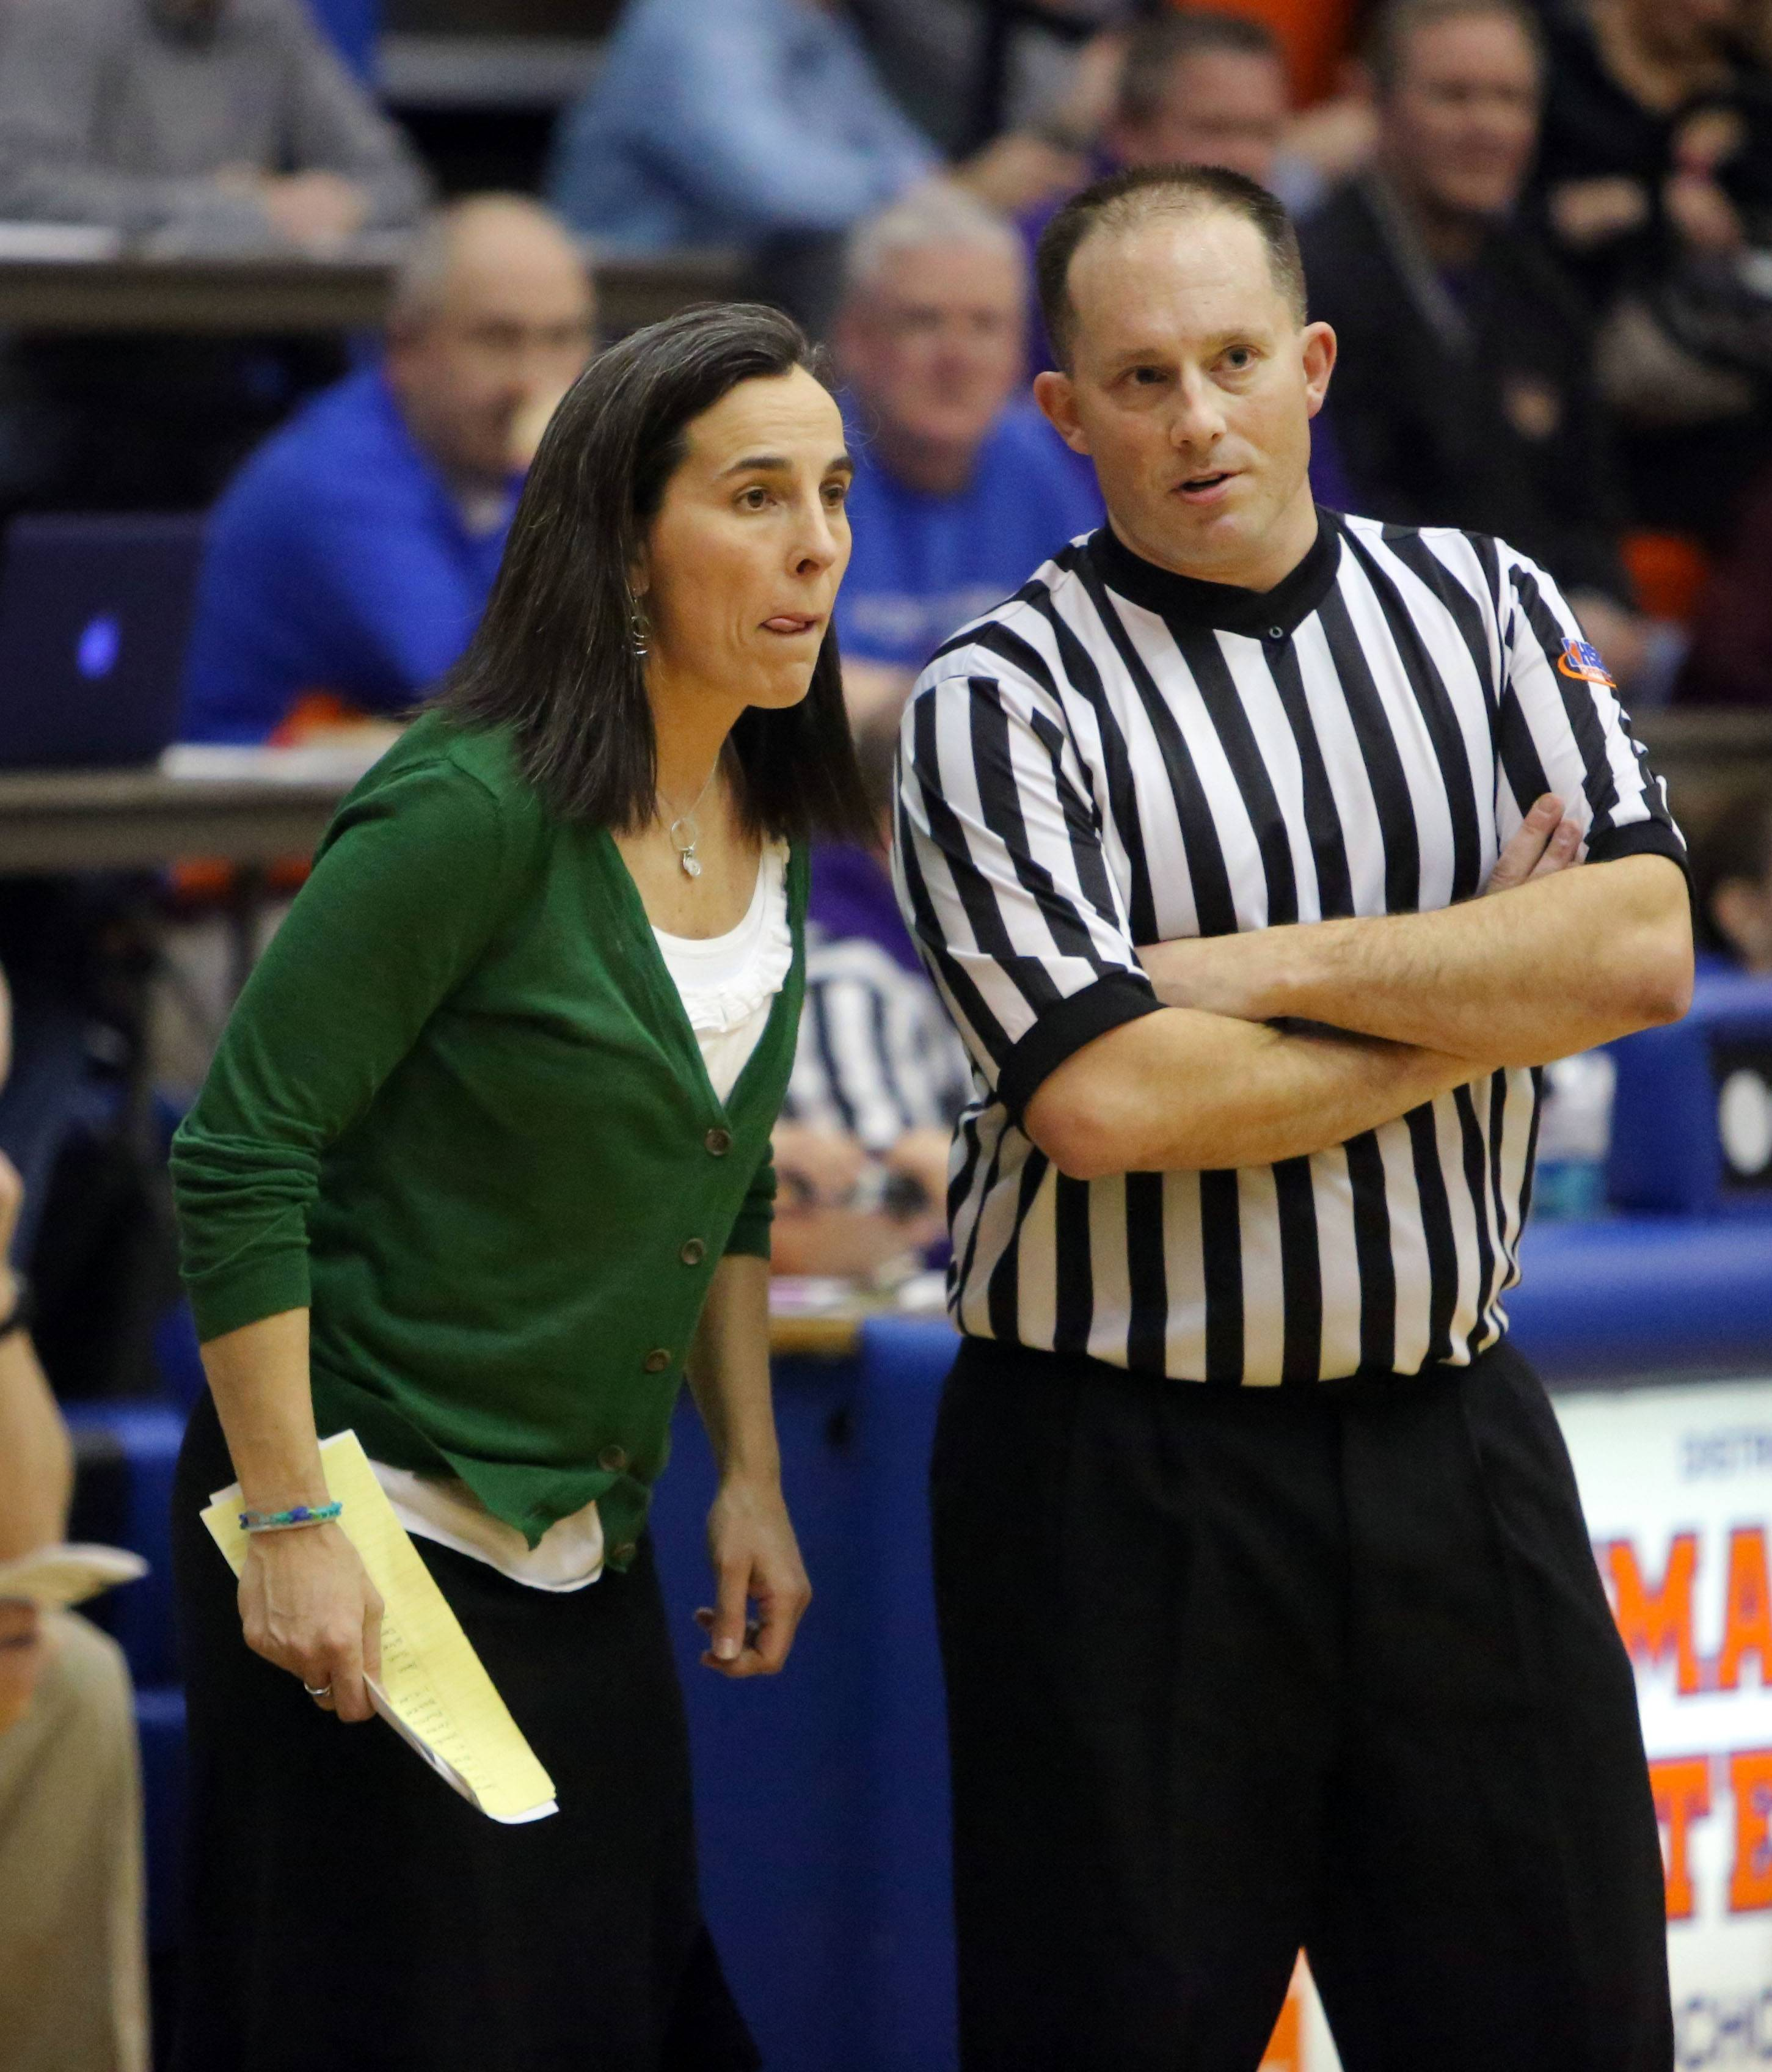 New Trier head coach Teri Rodgers talks to the ref.